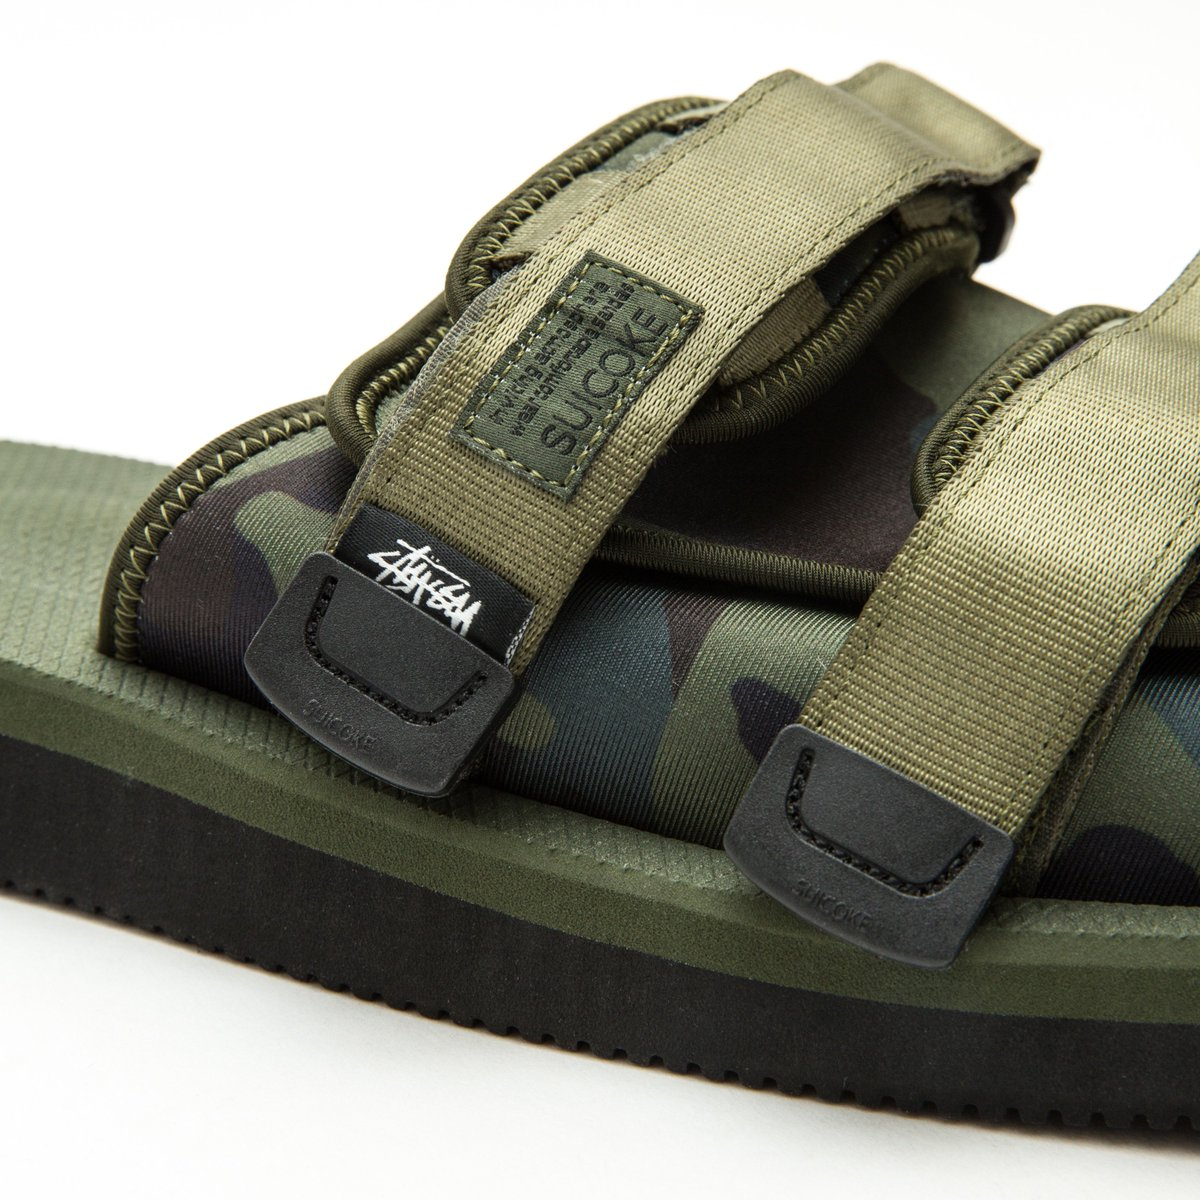 bf73fb08a9d8 SUMMER VIBES   Stussy Suicoke Sandals are Now Available In-Store at UBIQ  Georgetown   Online  ...